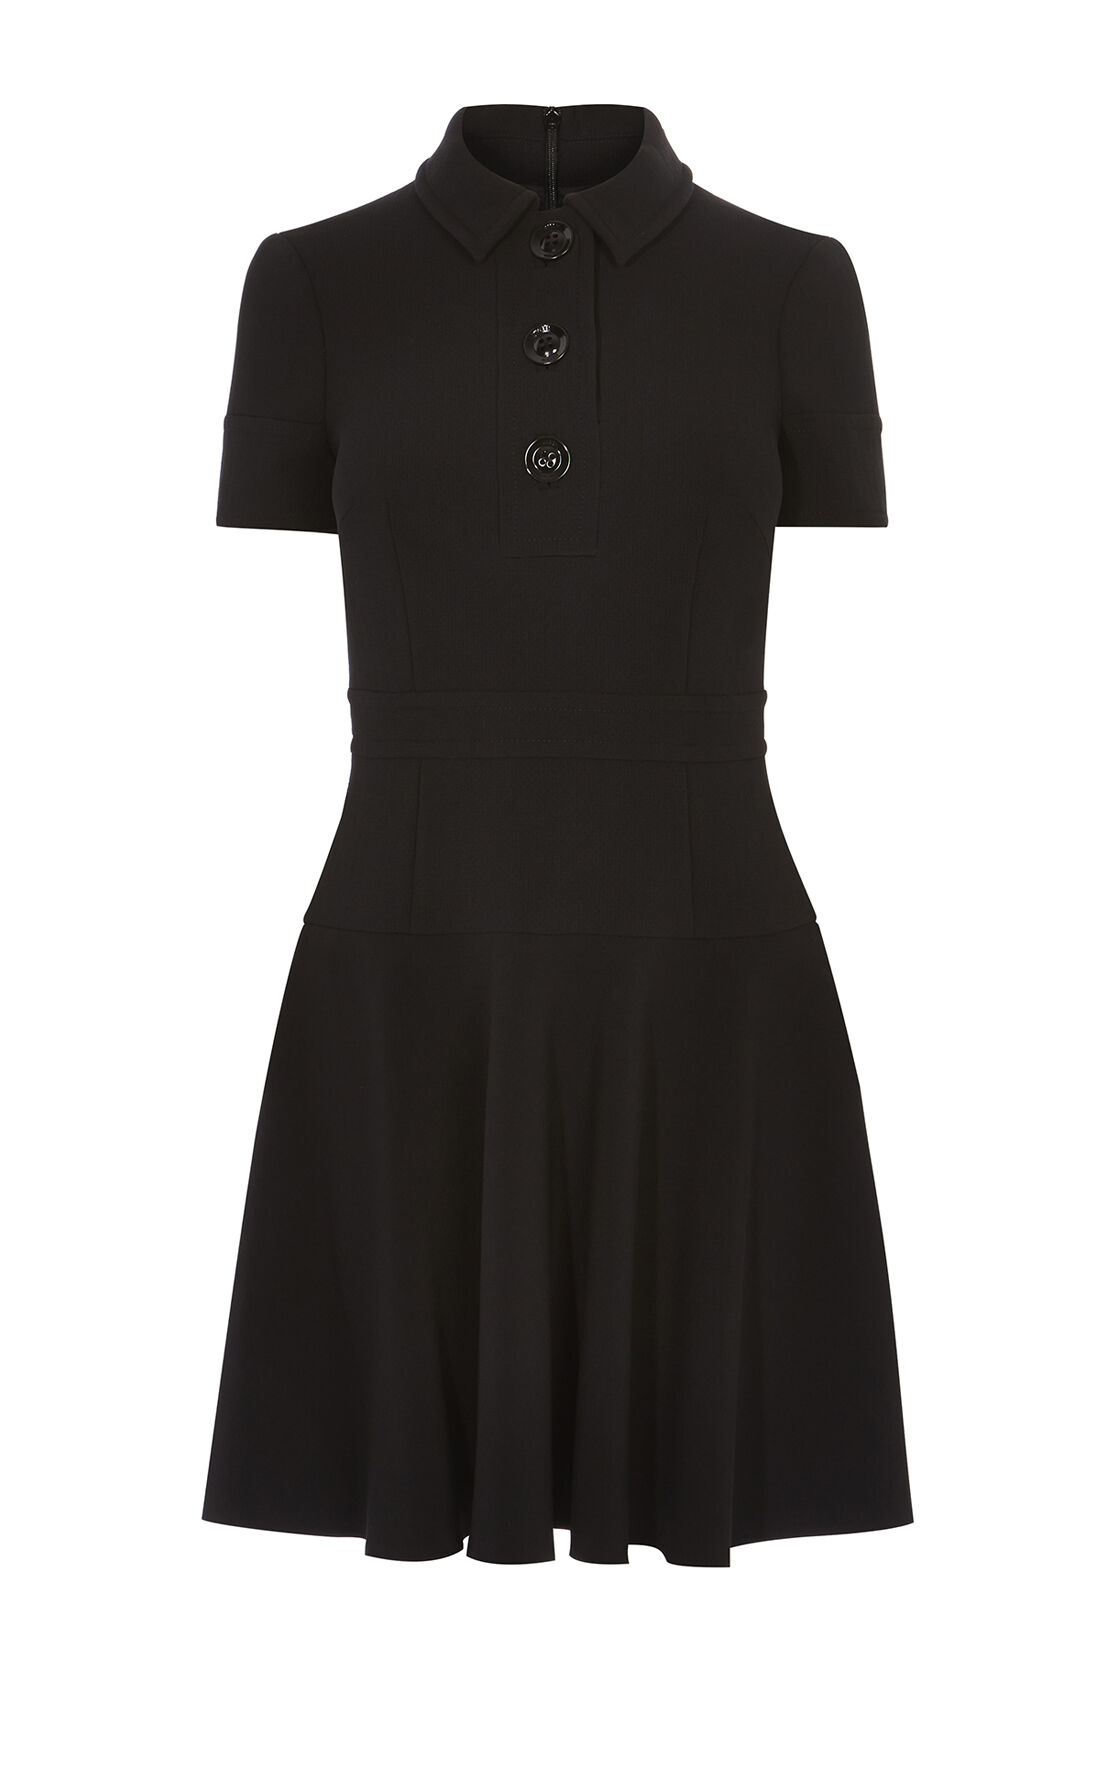 Karen Millen, POLO DRESS Black 0